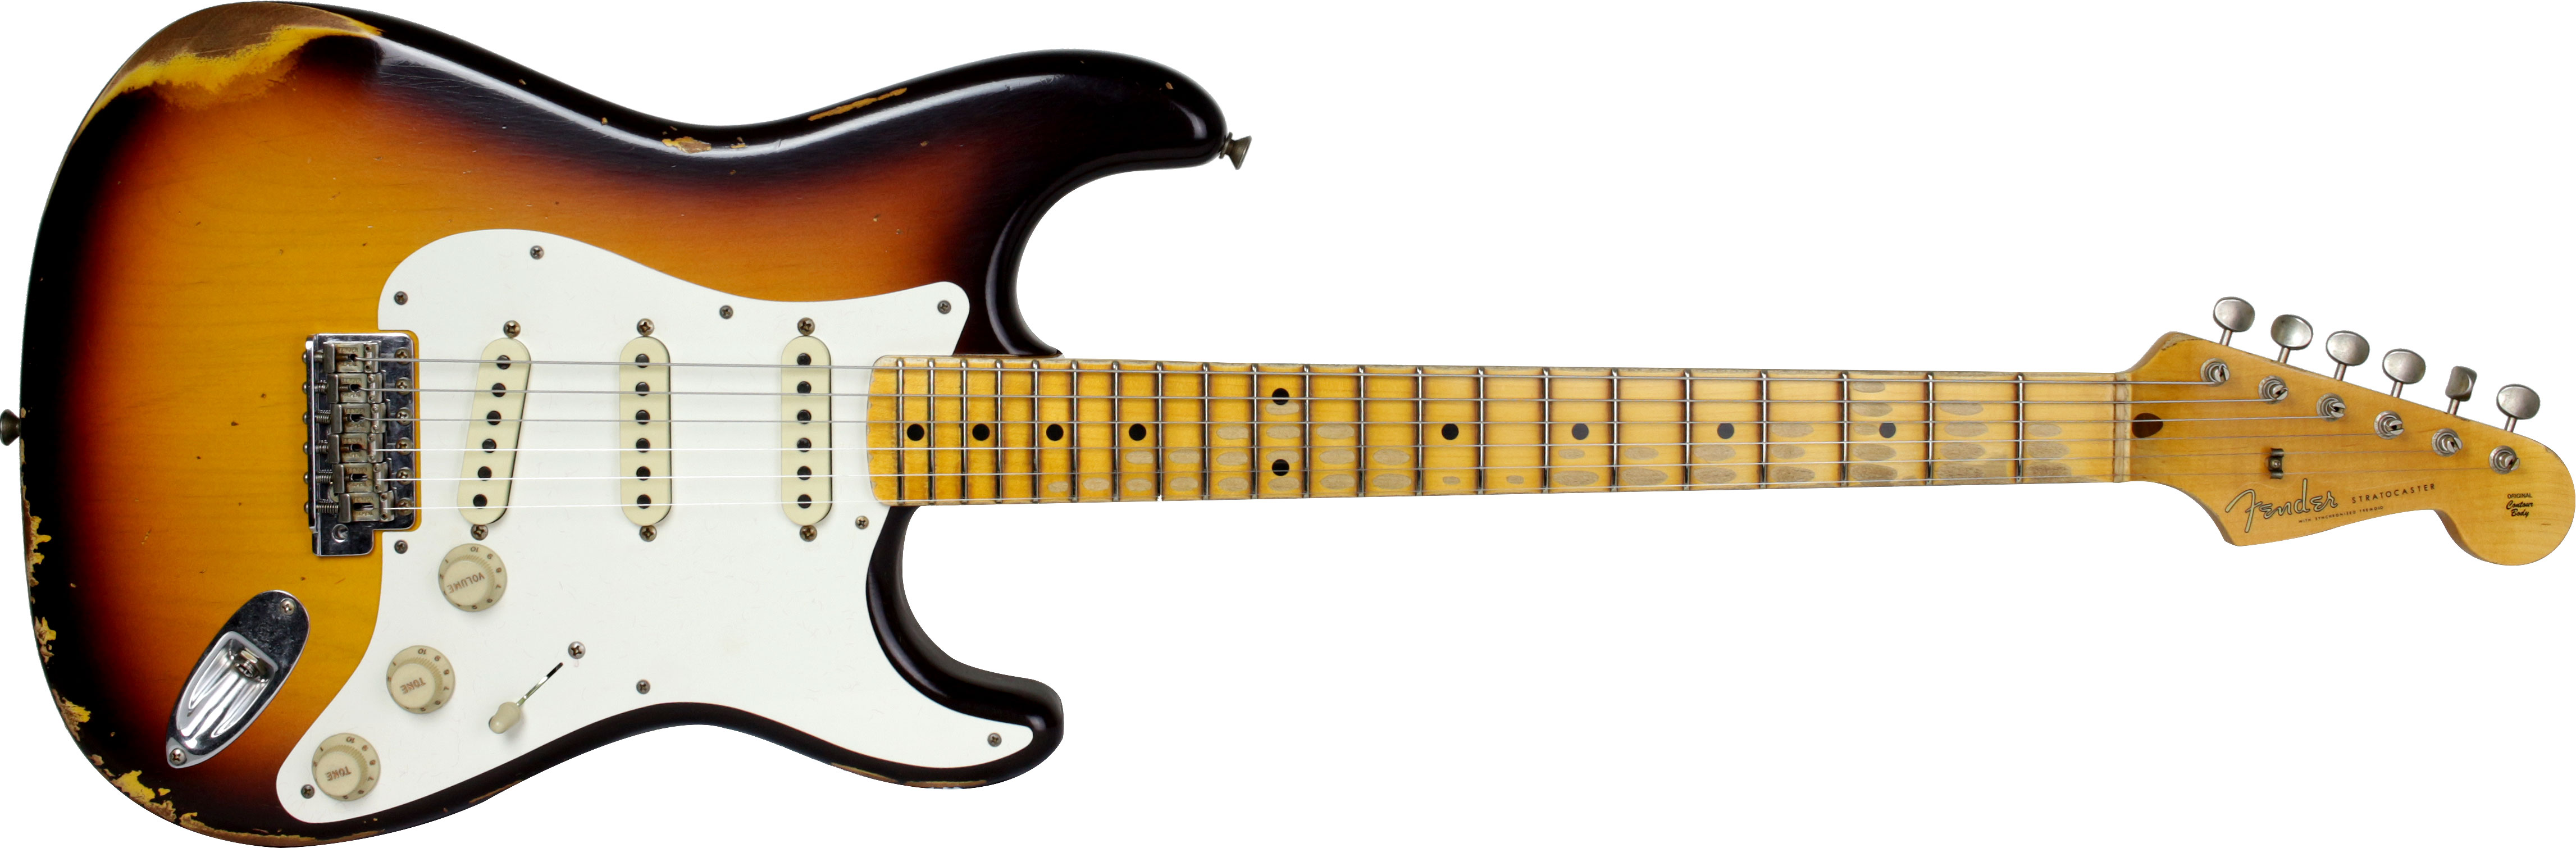 GUITARRA FENDER 923 5000 - 59 STRATOCASTER TIME MACHINE HEAVY RELIC LTD EDITION - 815 - F.CHOC 3TSB